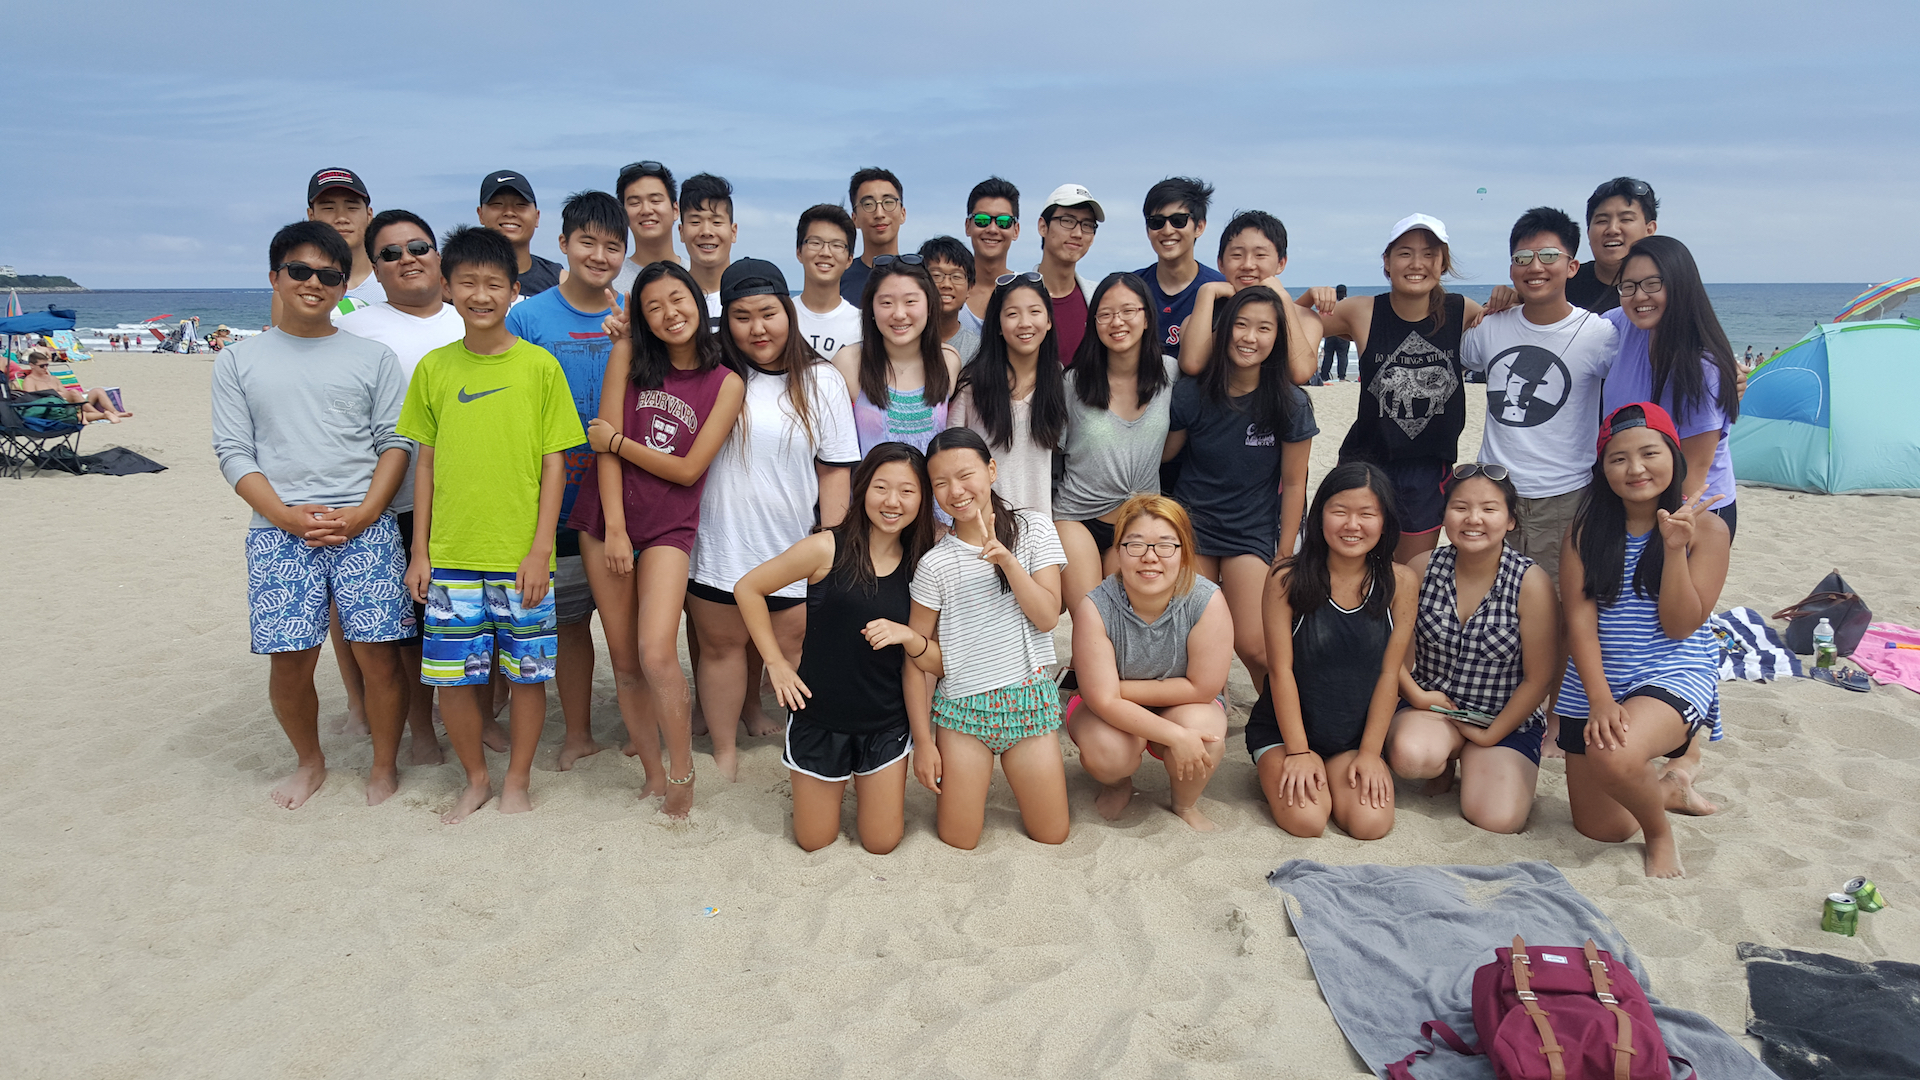 20160813 Youth group beach trip_1080.jpg